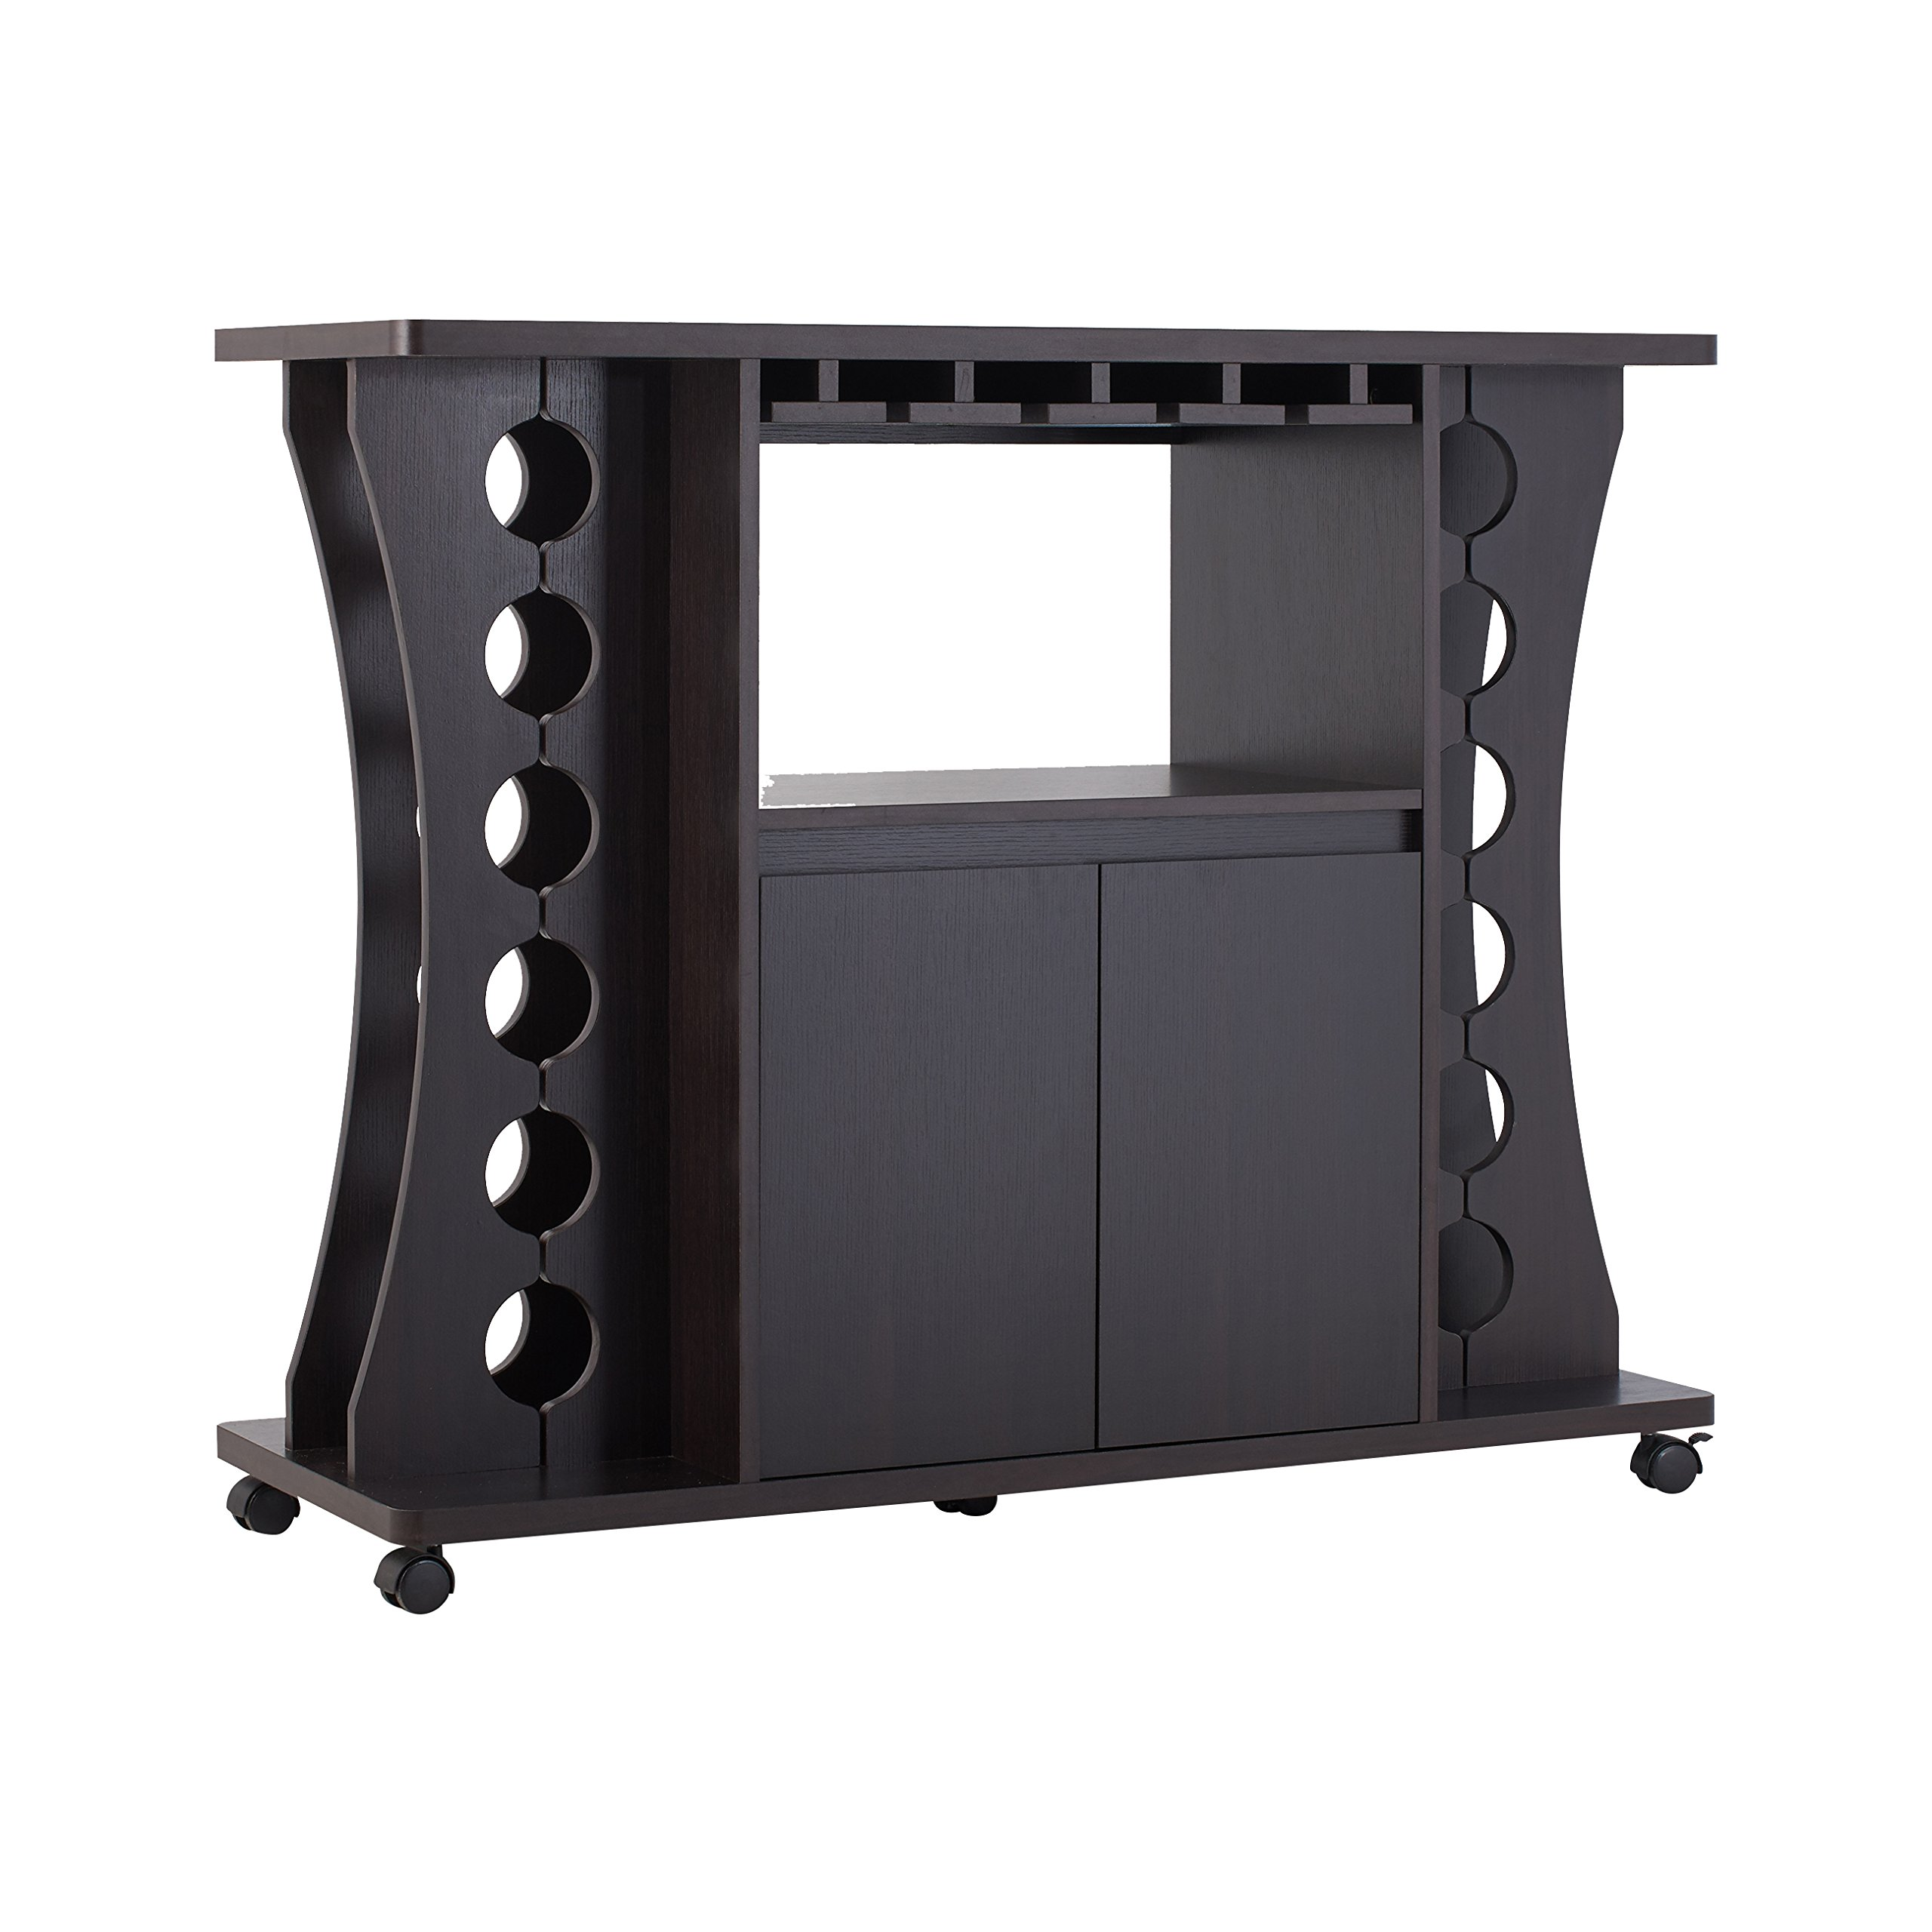 ioHOMES Henley Freestanding Bar Table with Wine Rack, Espresso by HOMES: Inside + Out